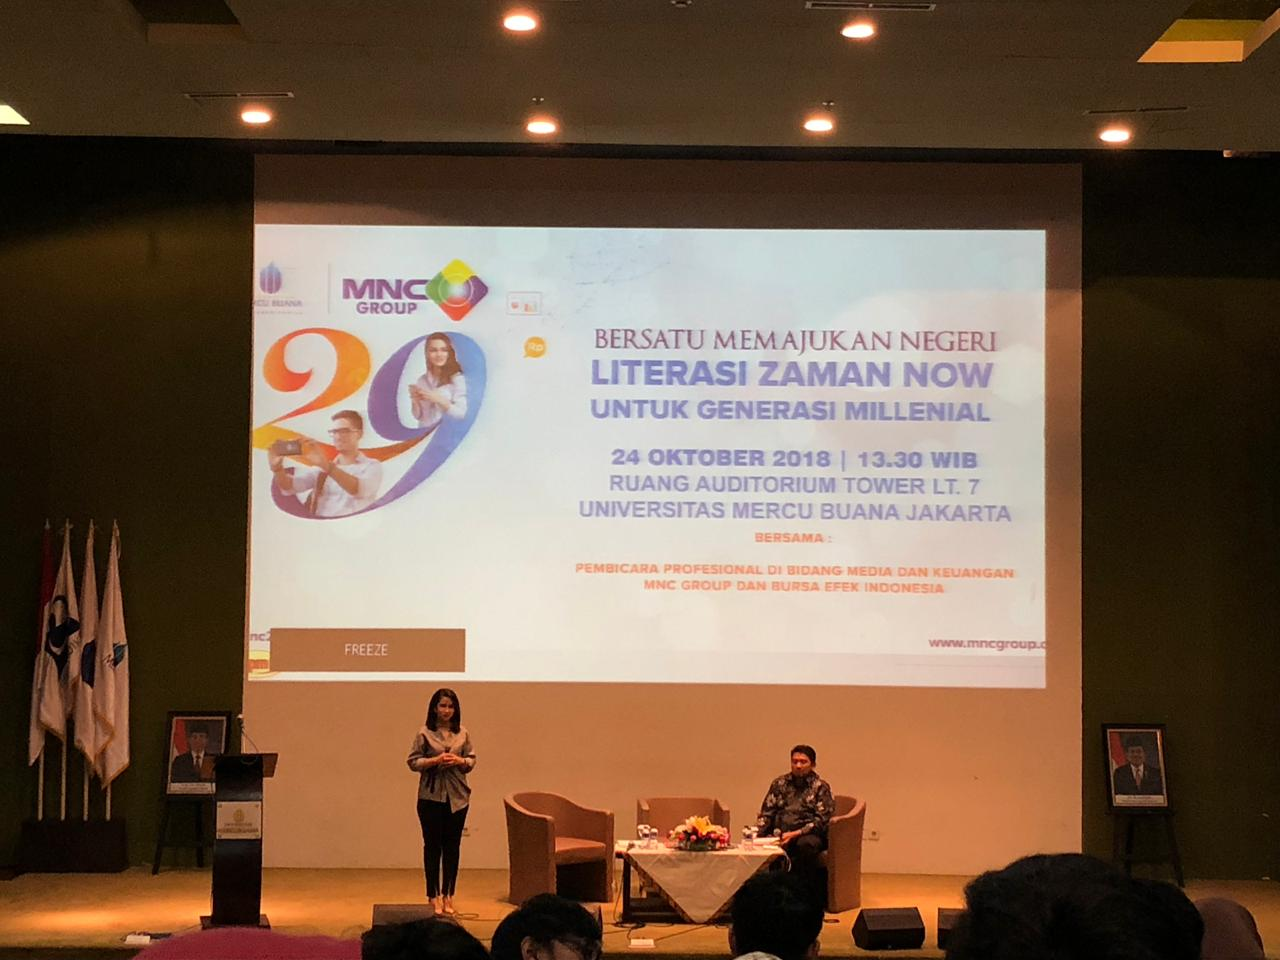 https: img.okezone.com content 2018 10 24 65 1968432 mnc-group-gelar-literasi-media-di-universitas-mercu-buana-0SSaVmMQvS.jpeg